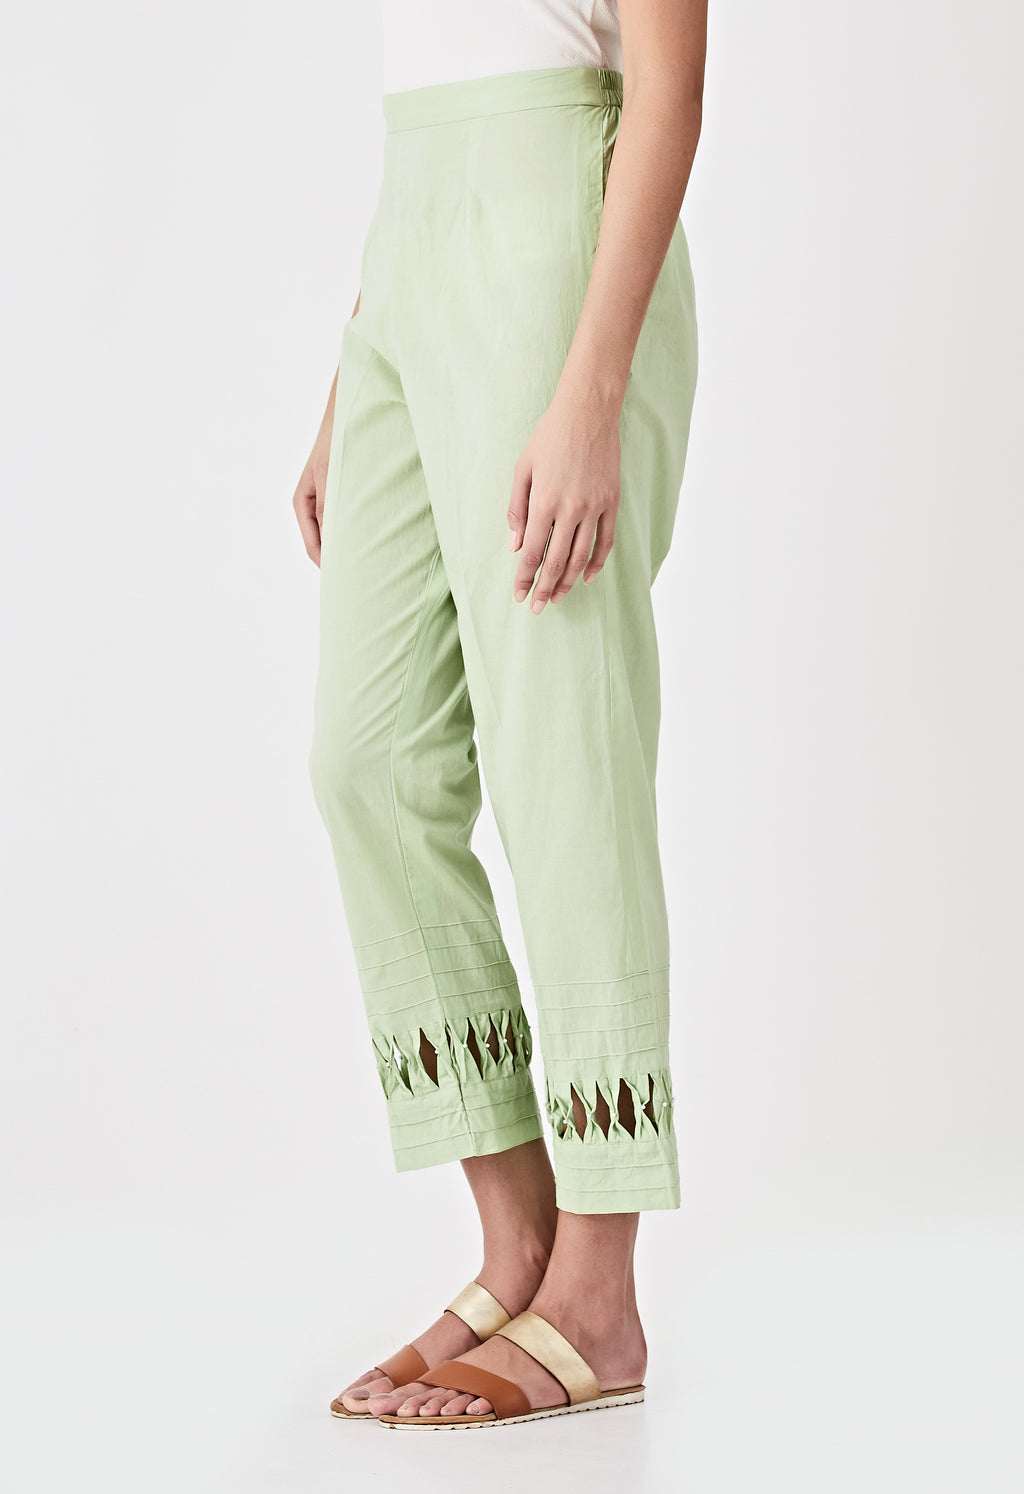 Smocked Detail Pants- Green